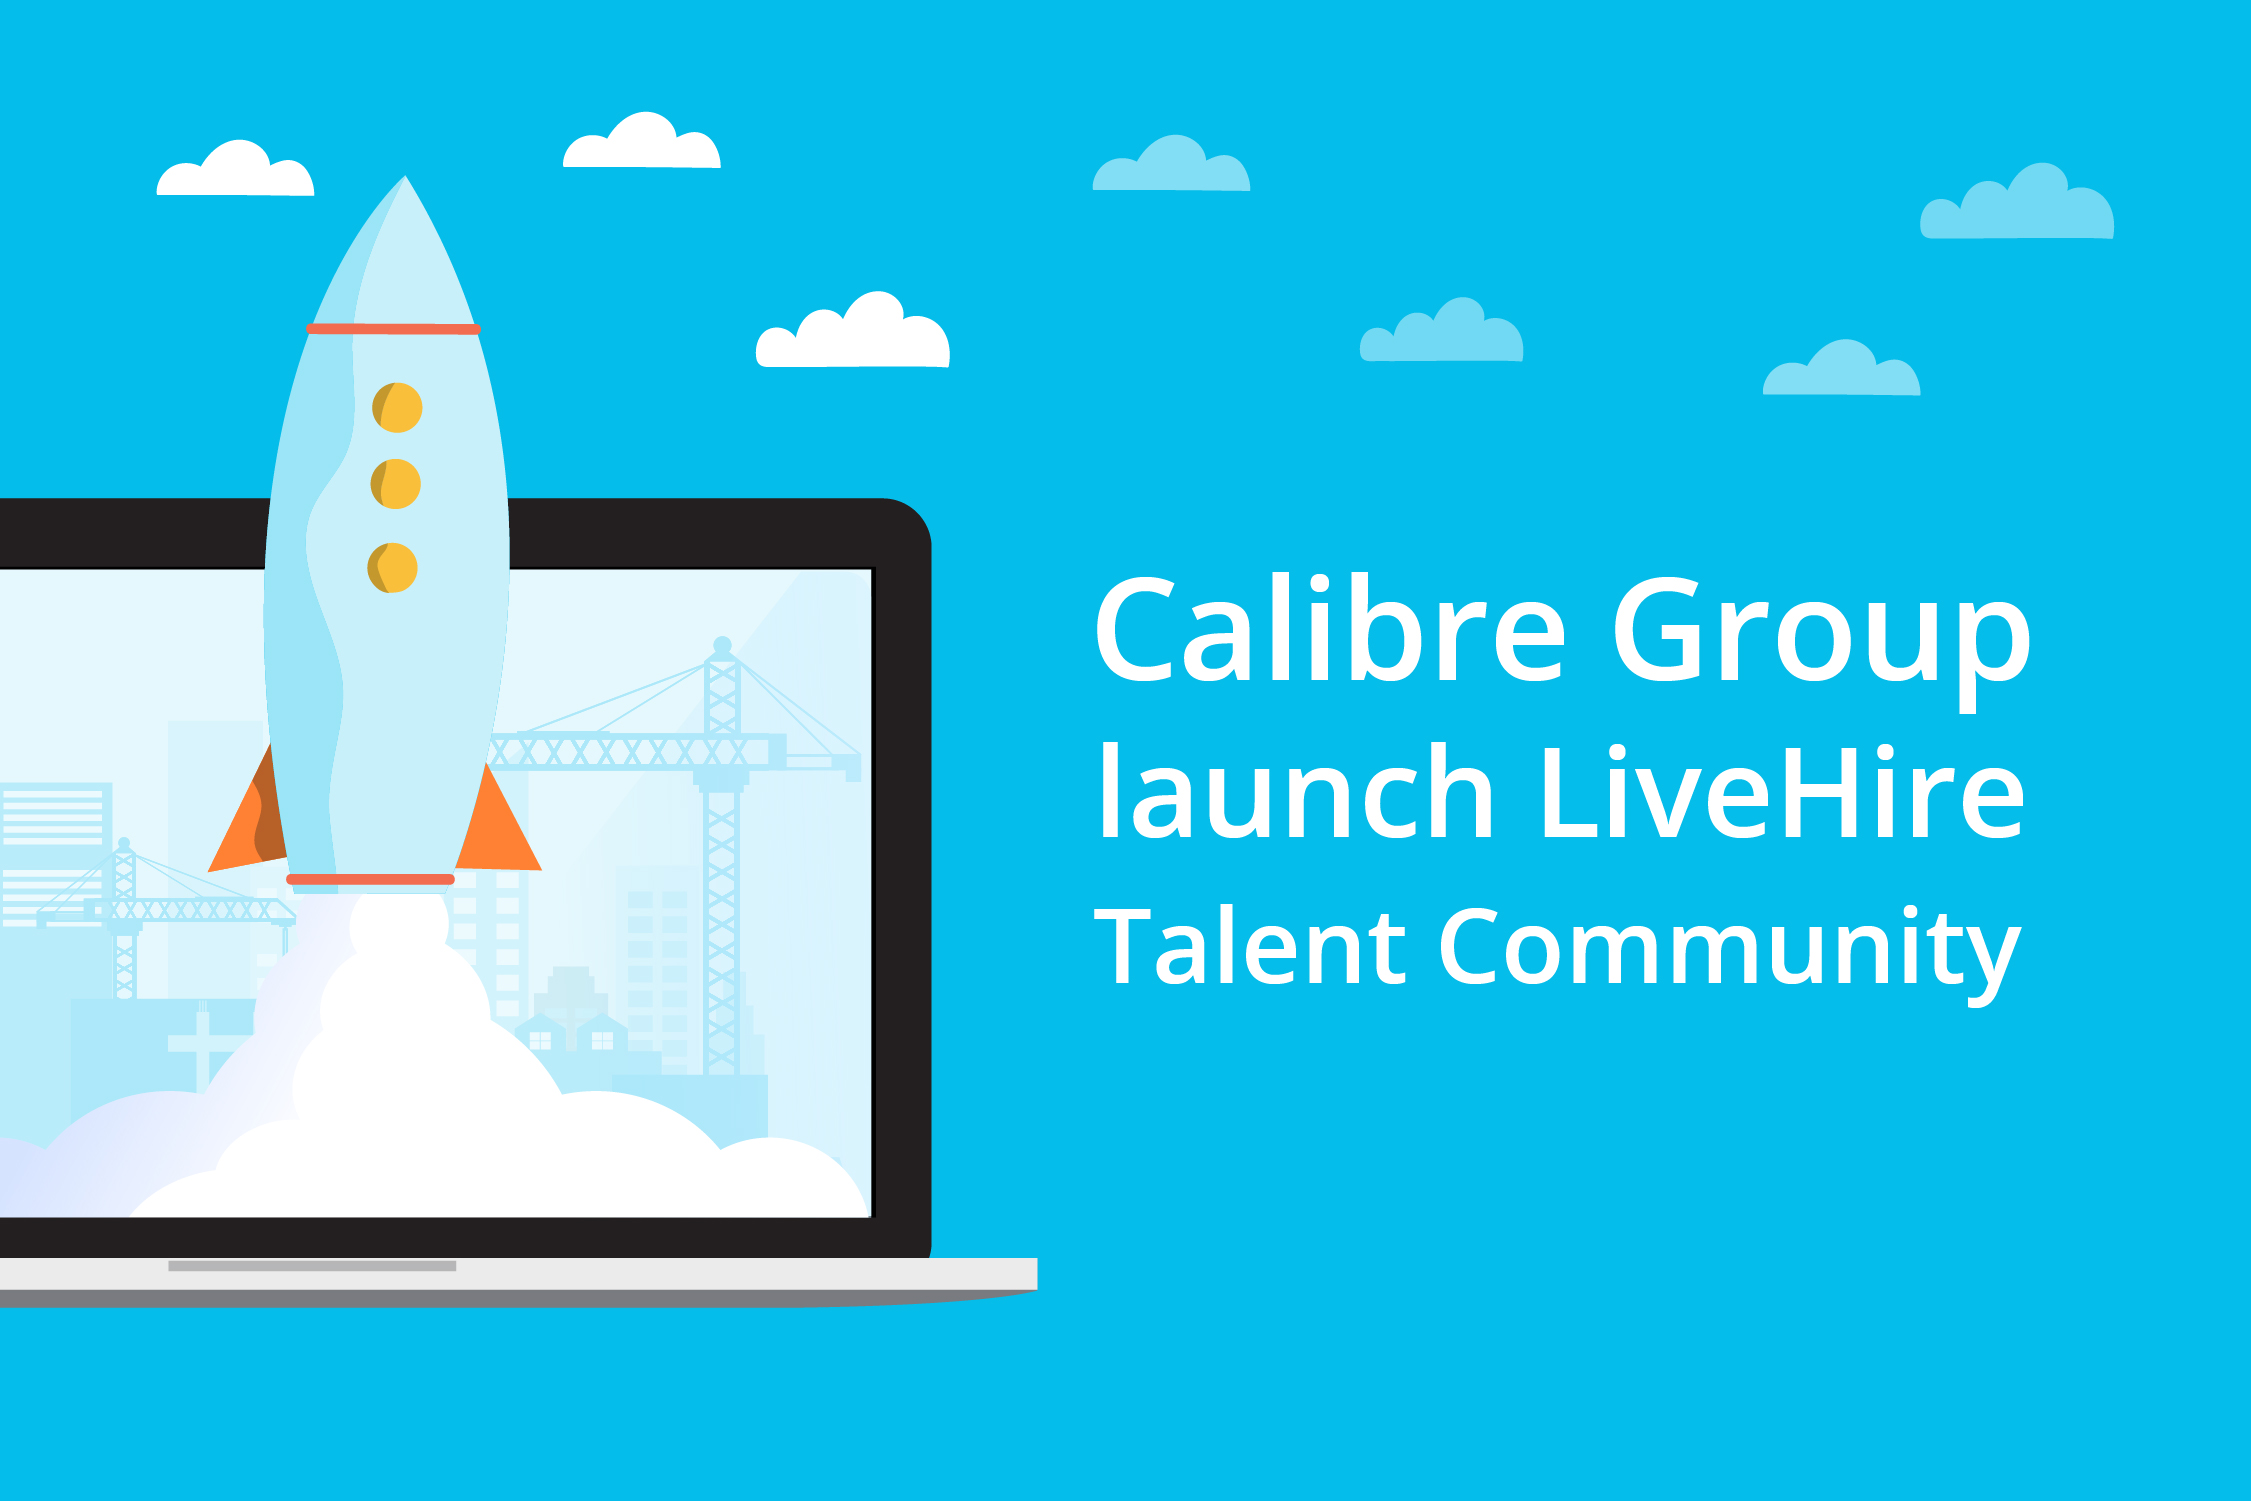 Calibre Group launch LiveHire Talent Community